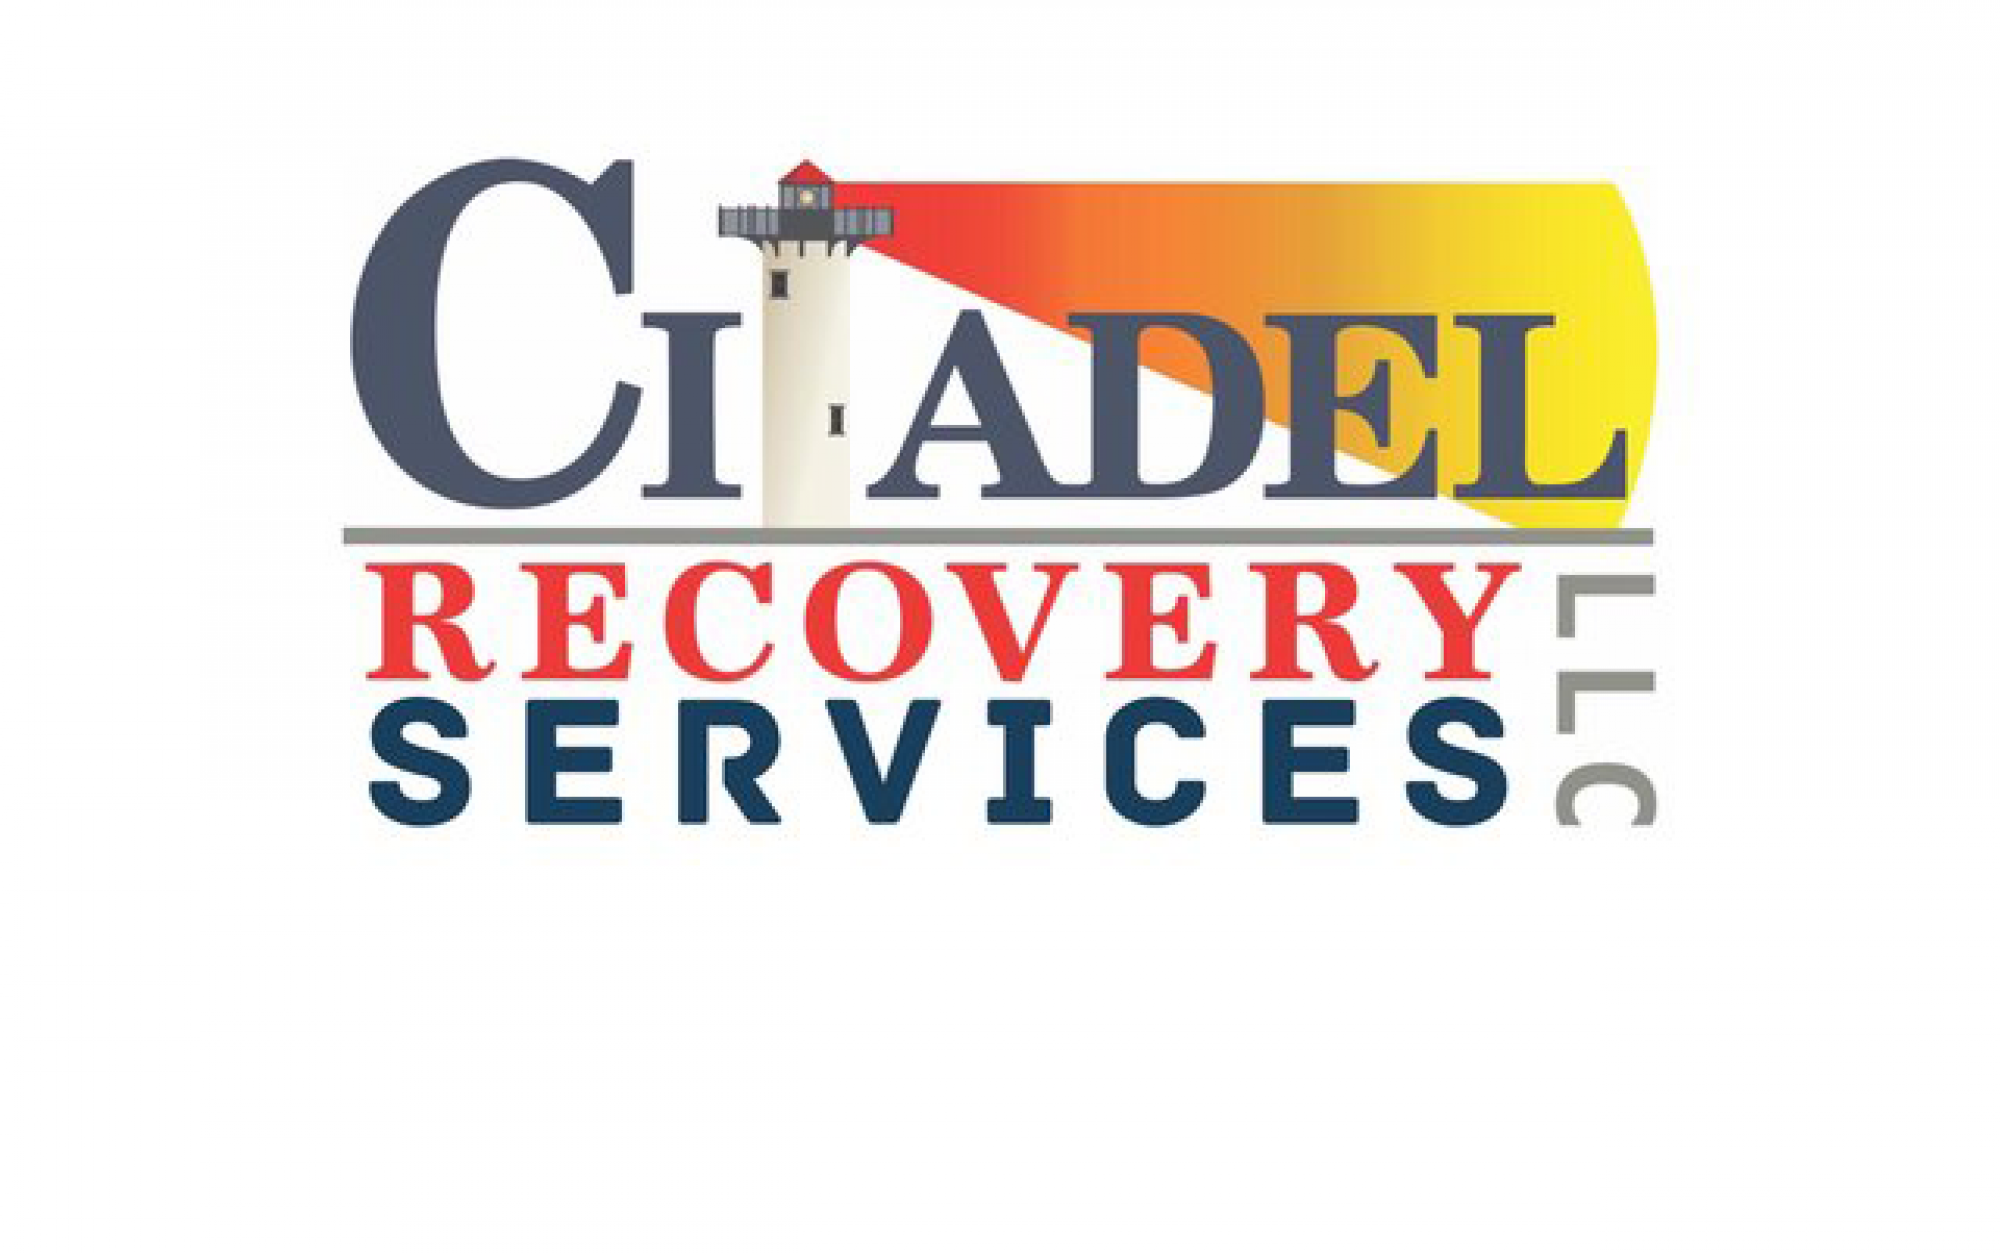 Citadel Recovery Services